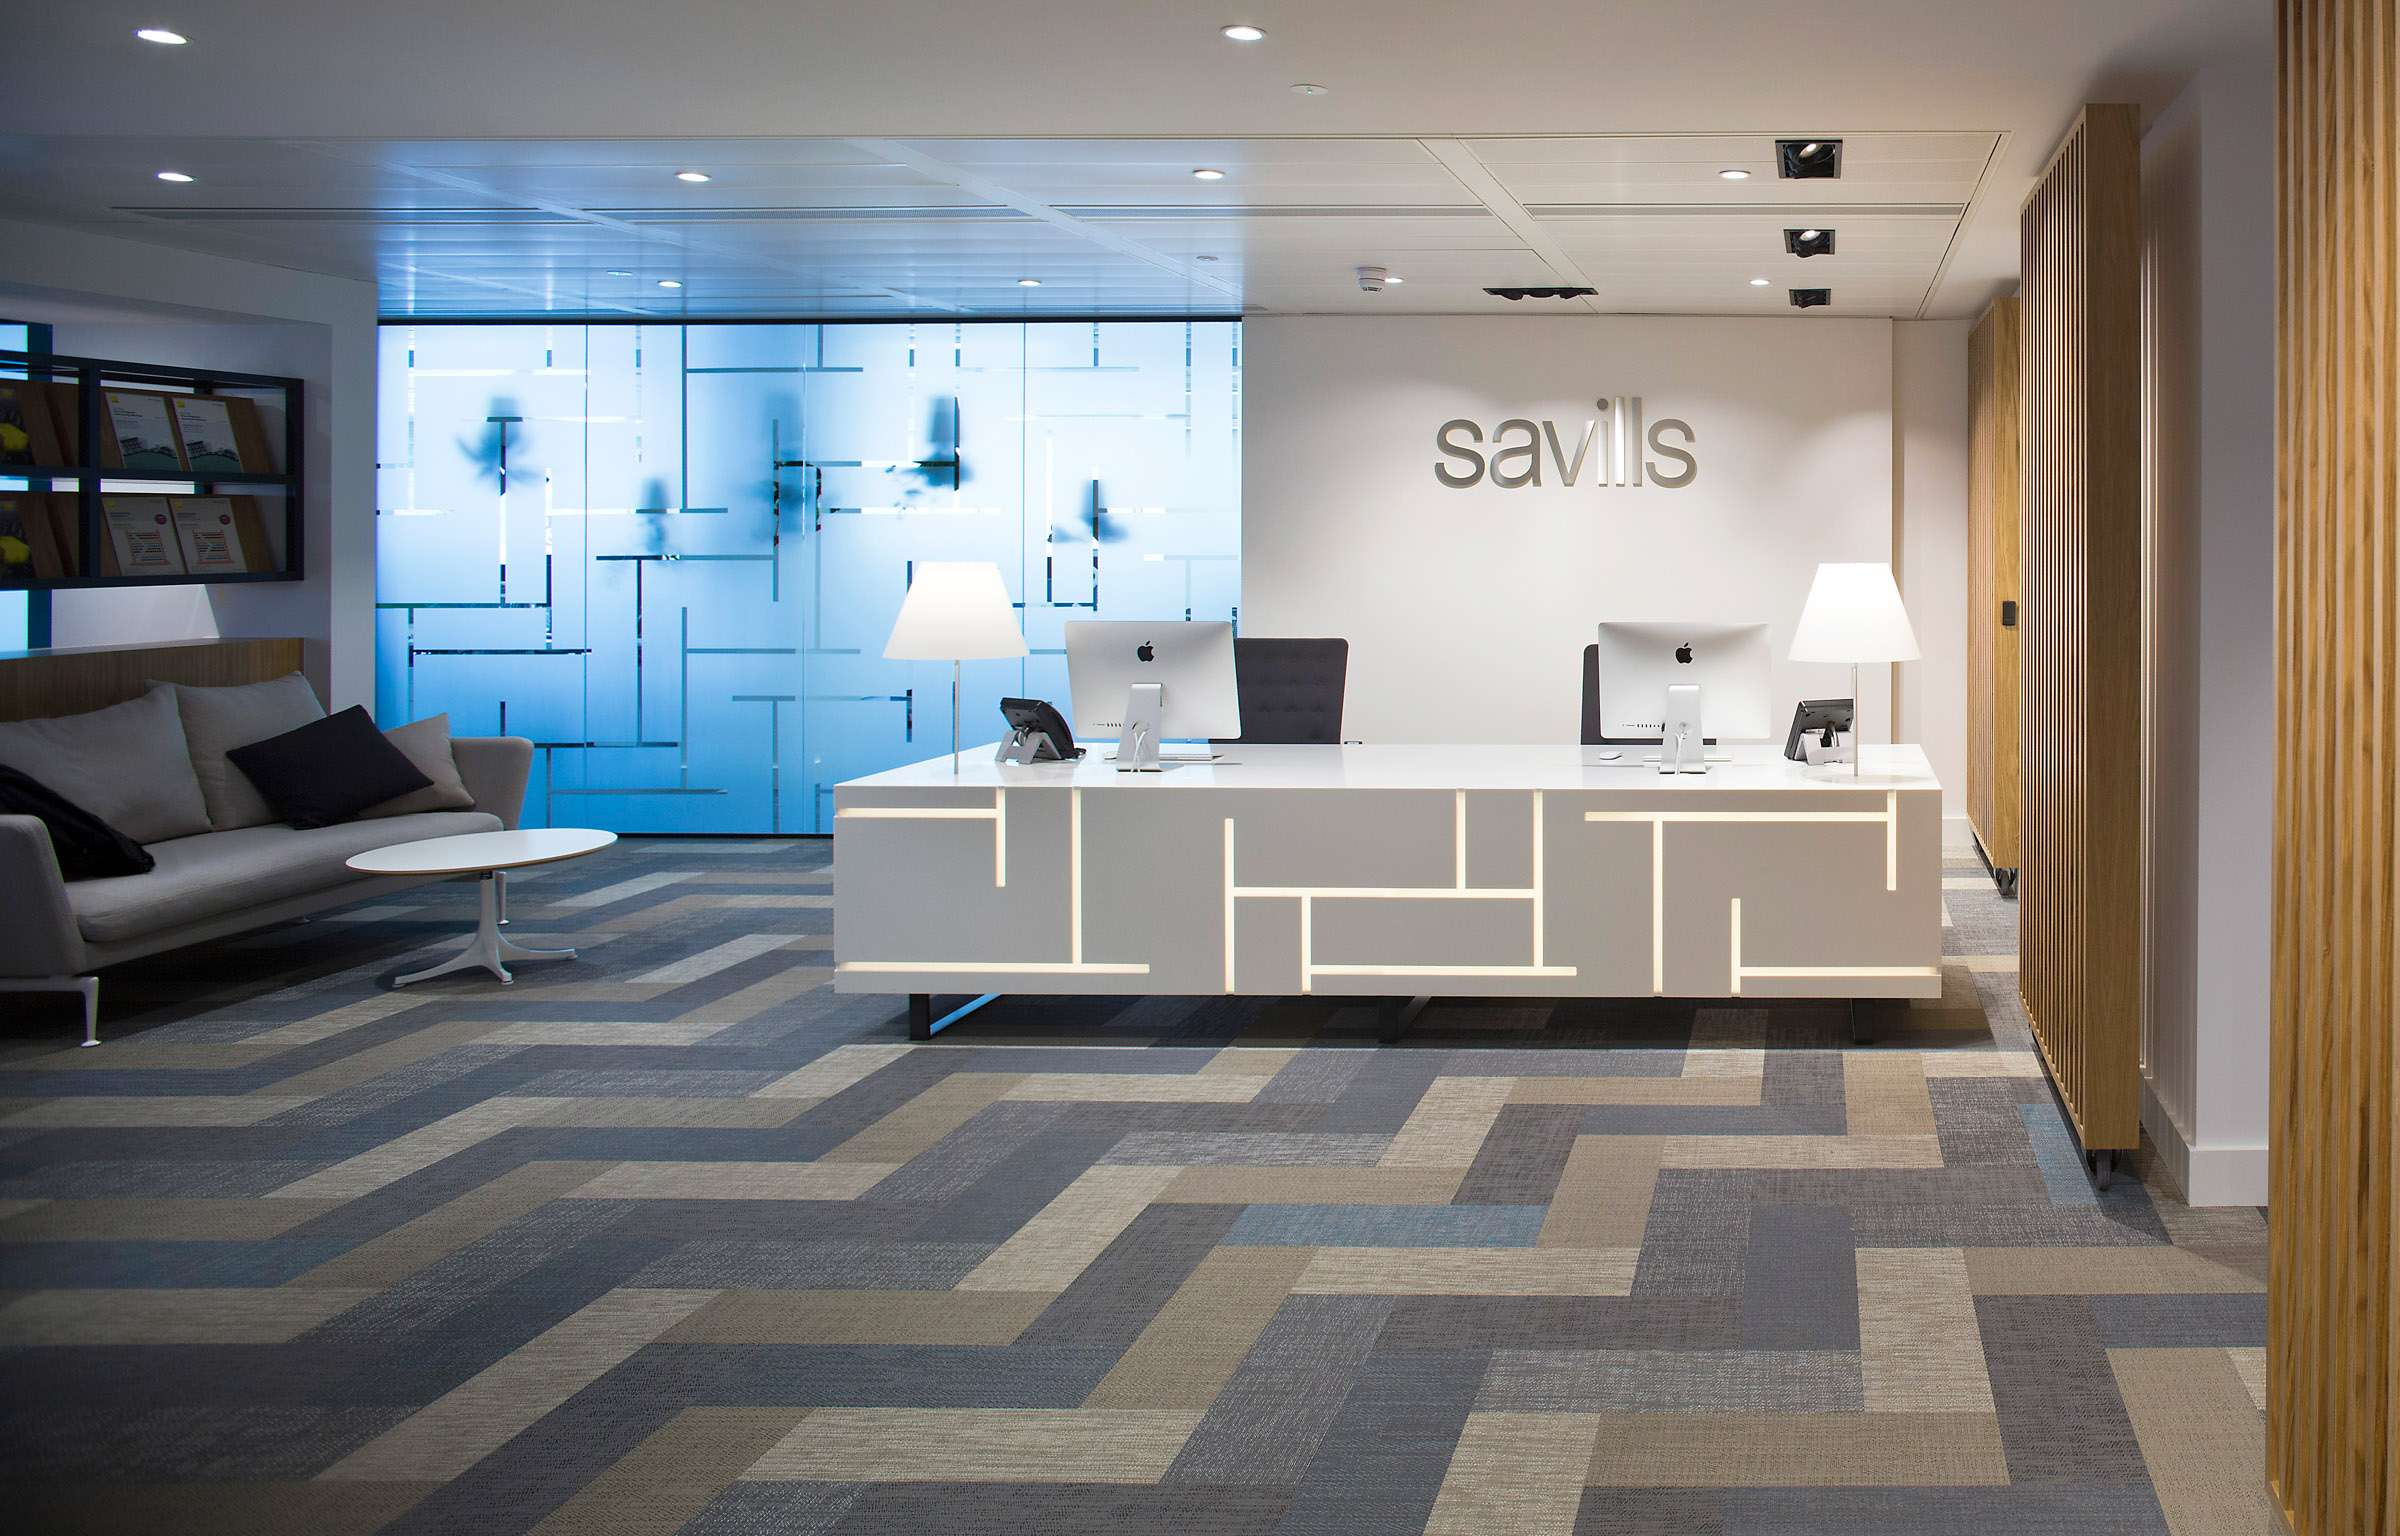 Floor pattern in blue, beige and gray using Bolon planks in the office of Savills in London, UK